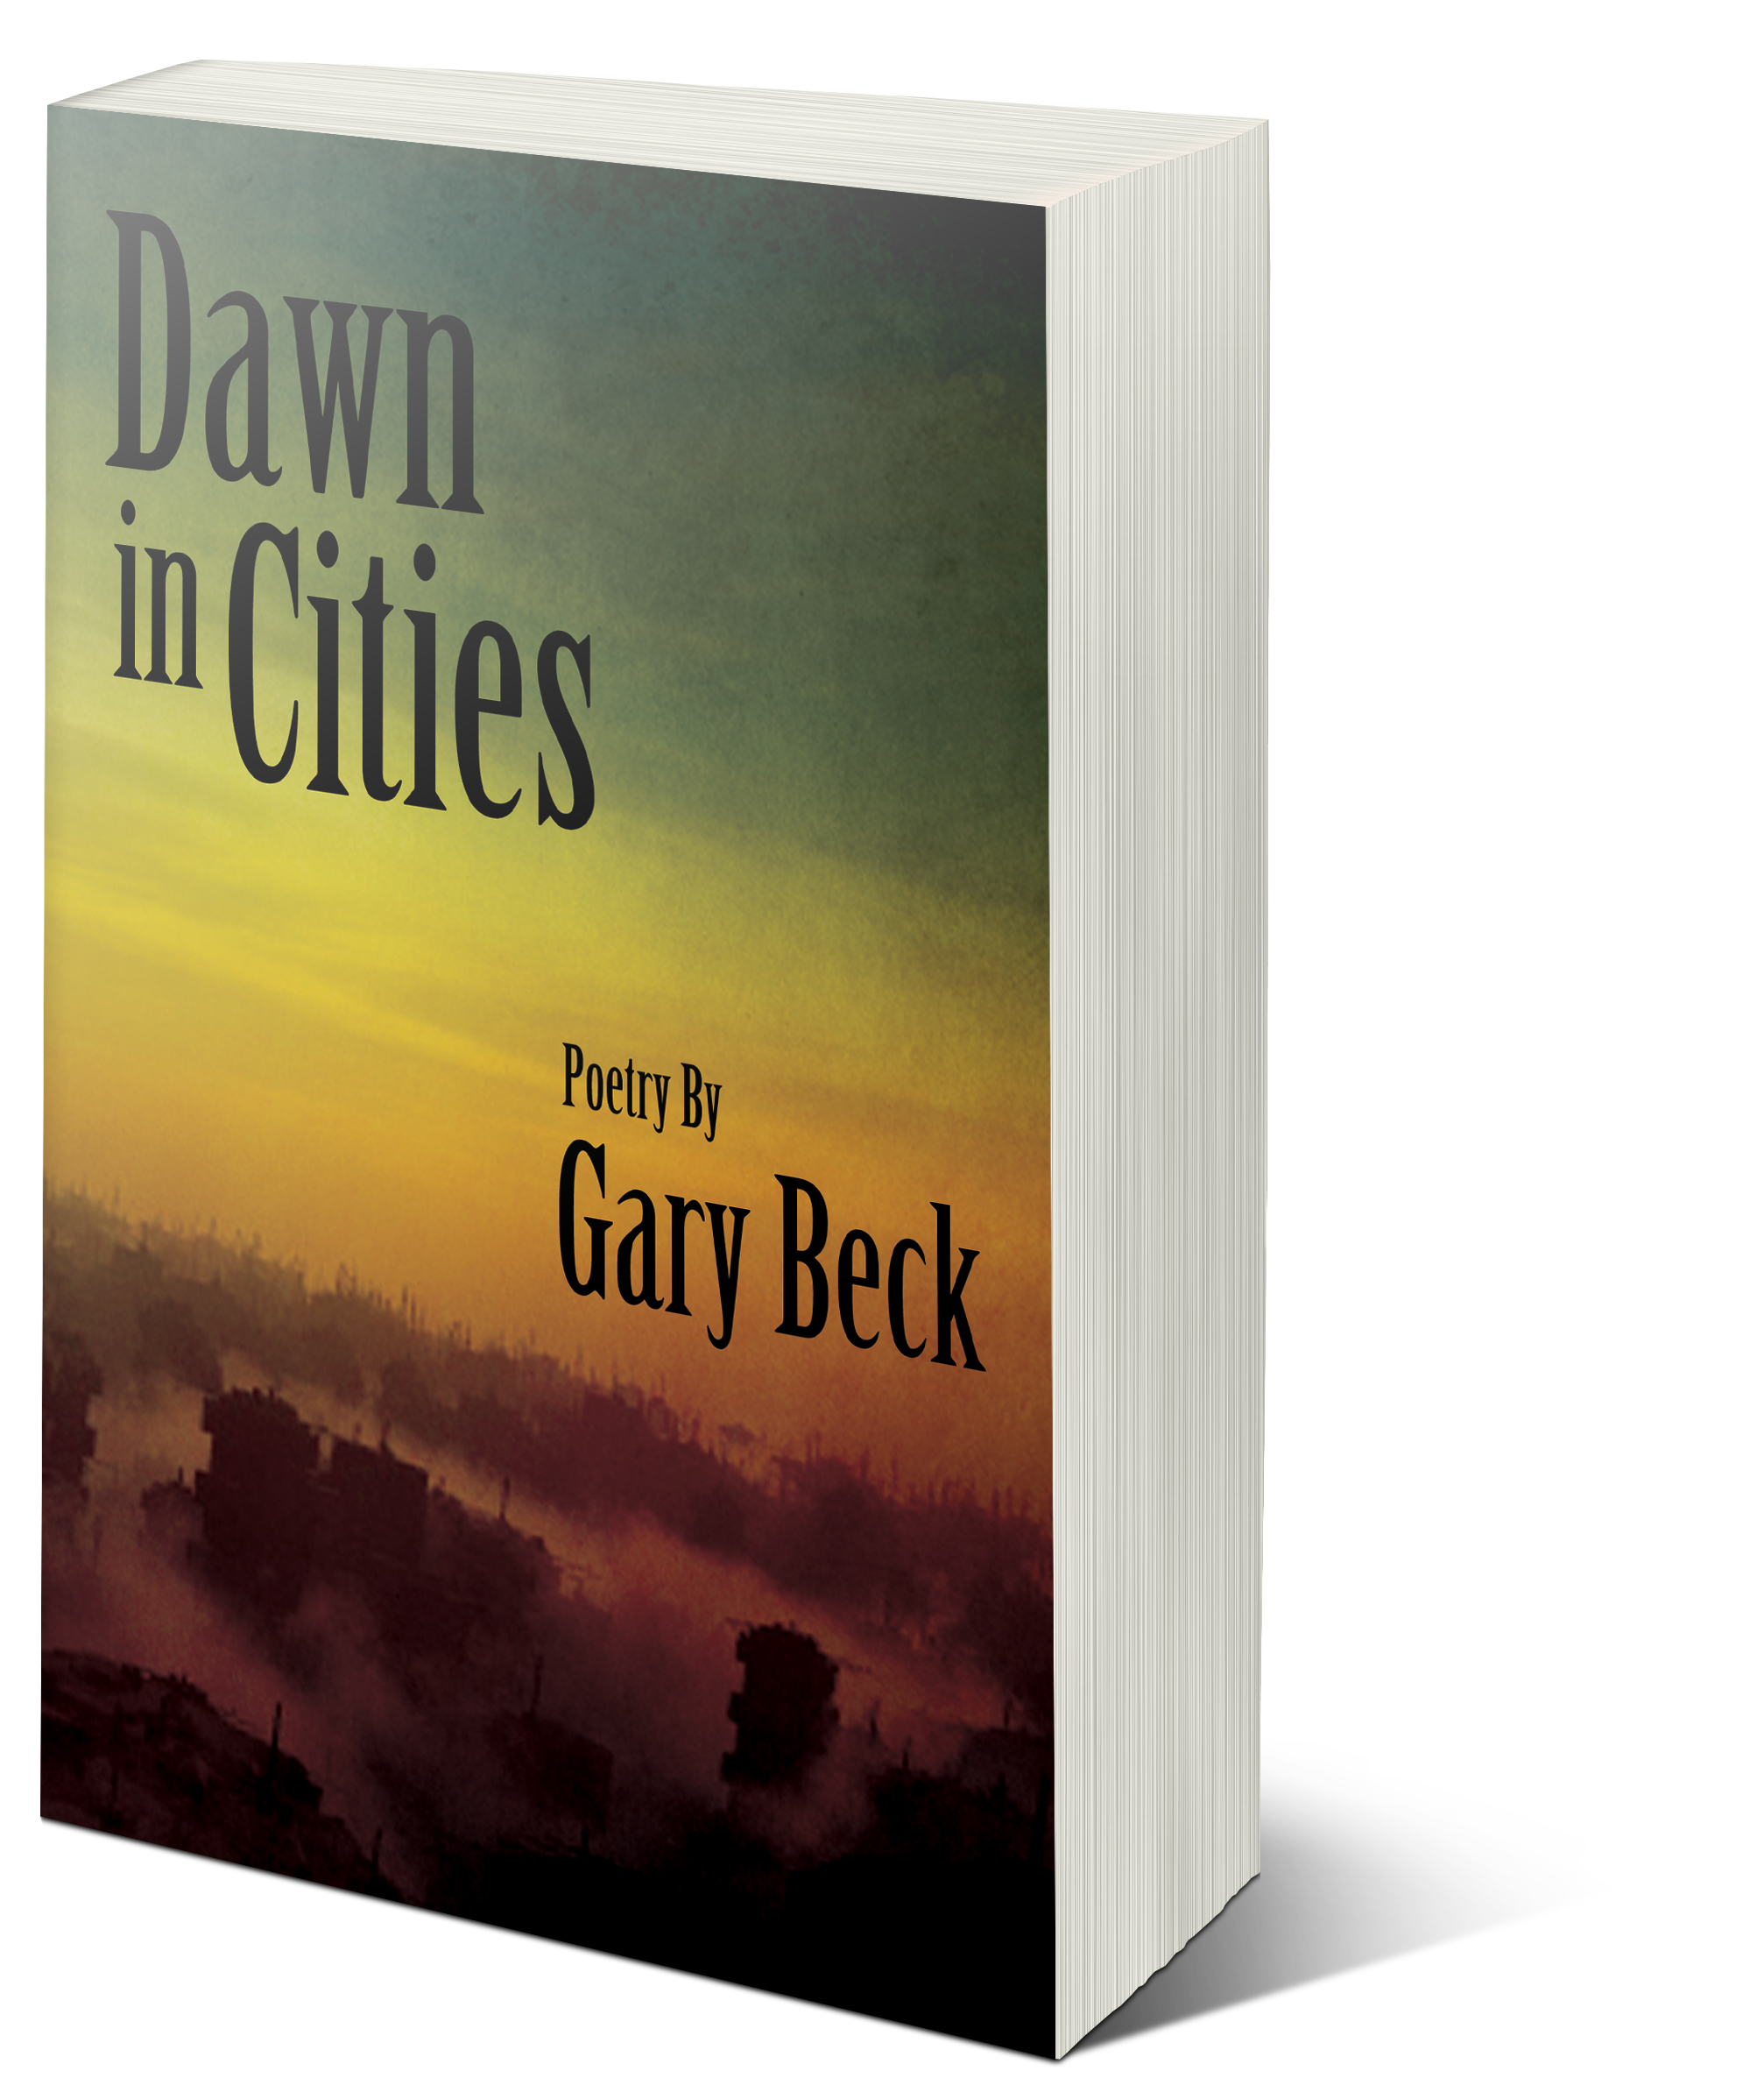 Dawn in Cities Release!